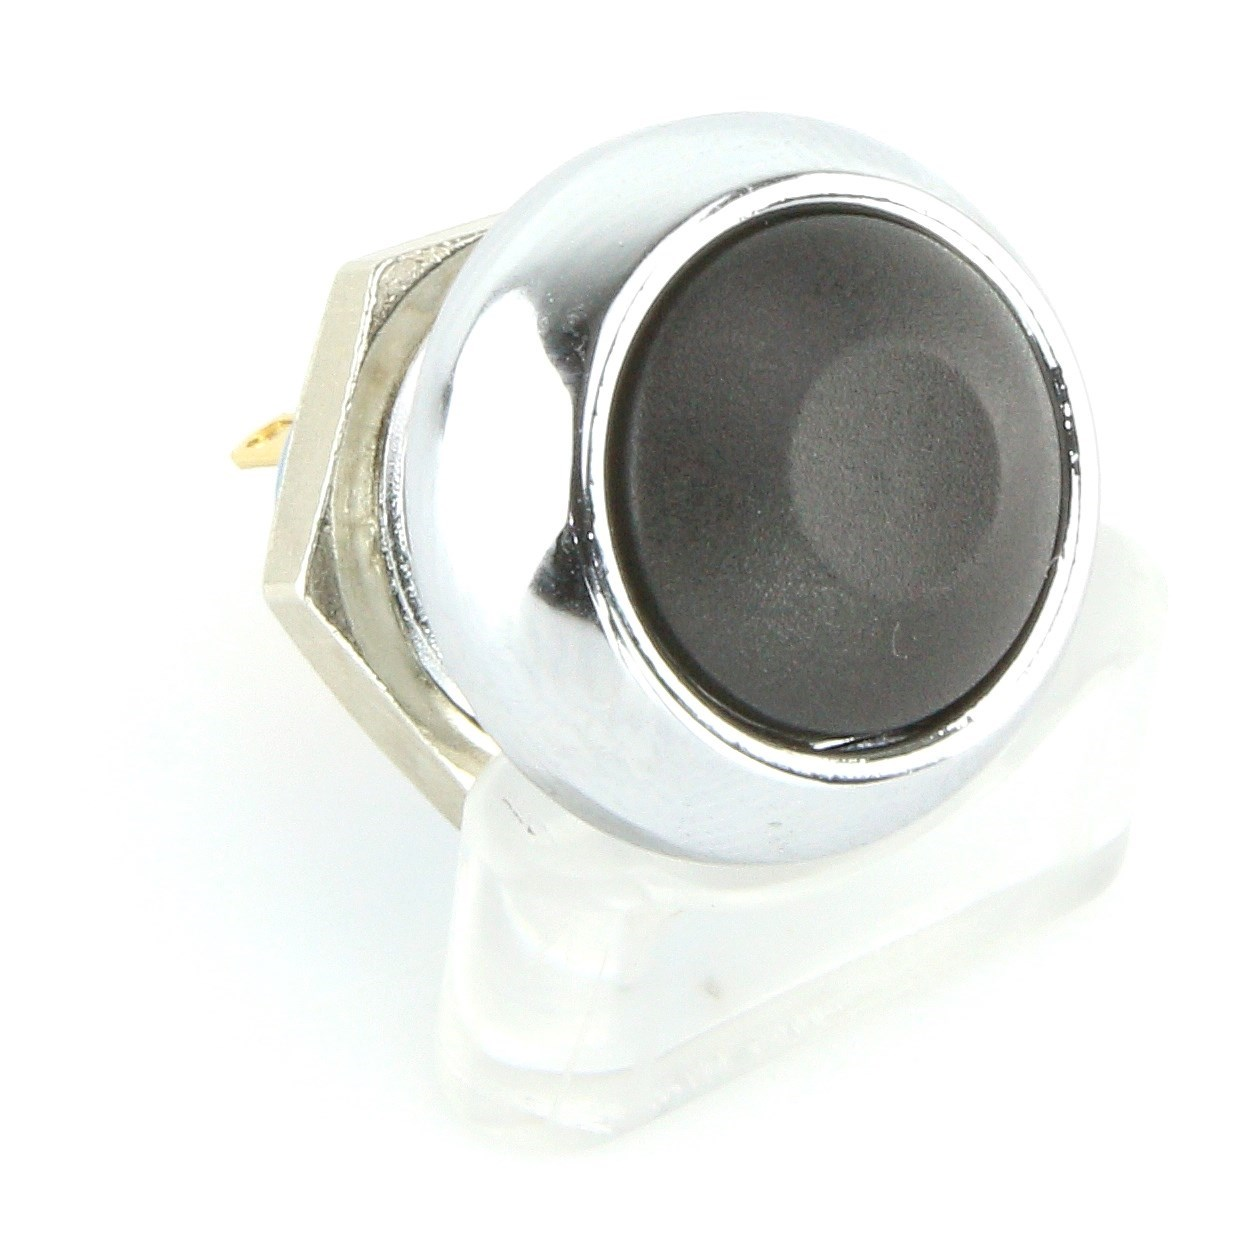 Momentary Push Button Switch Chrome Car Builder Solutions Kit Panel Mounted On Hazard